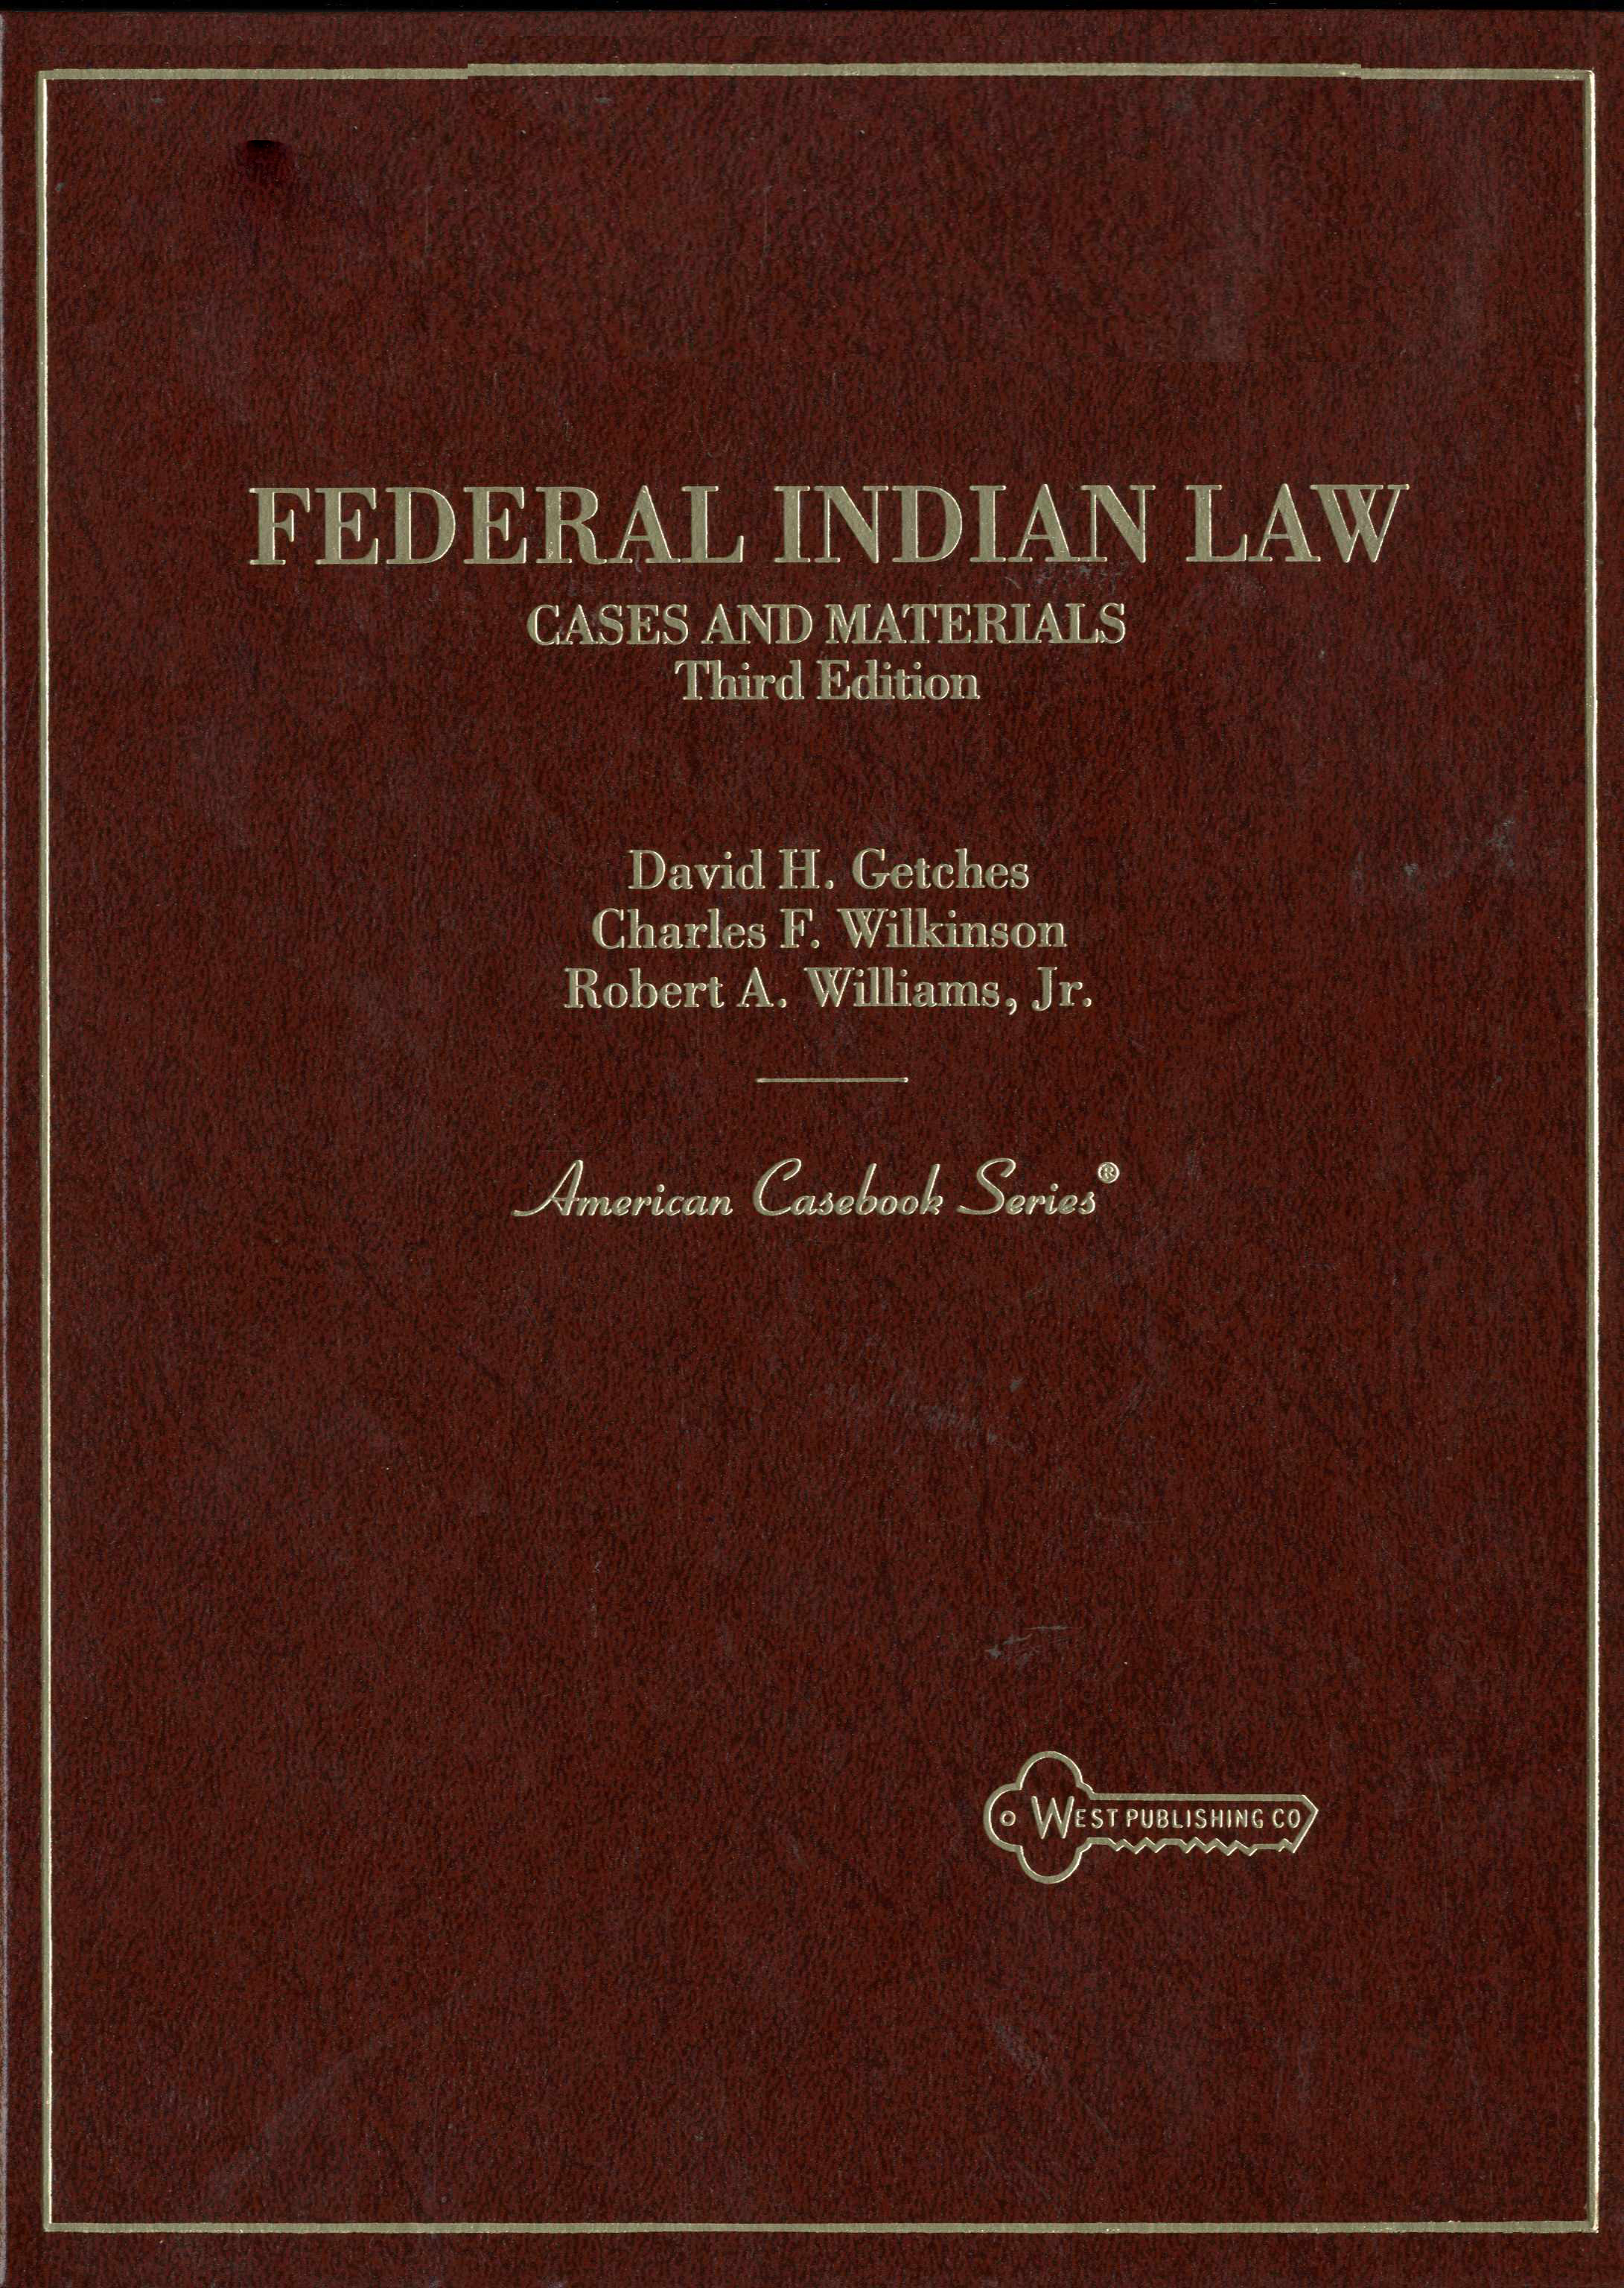 Federal Indian Law: Cases and Materials 3rd Edition Image